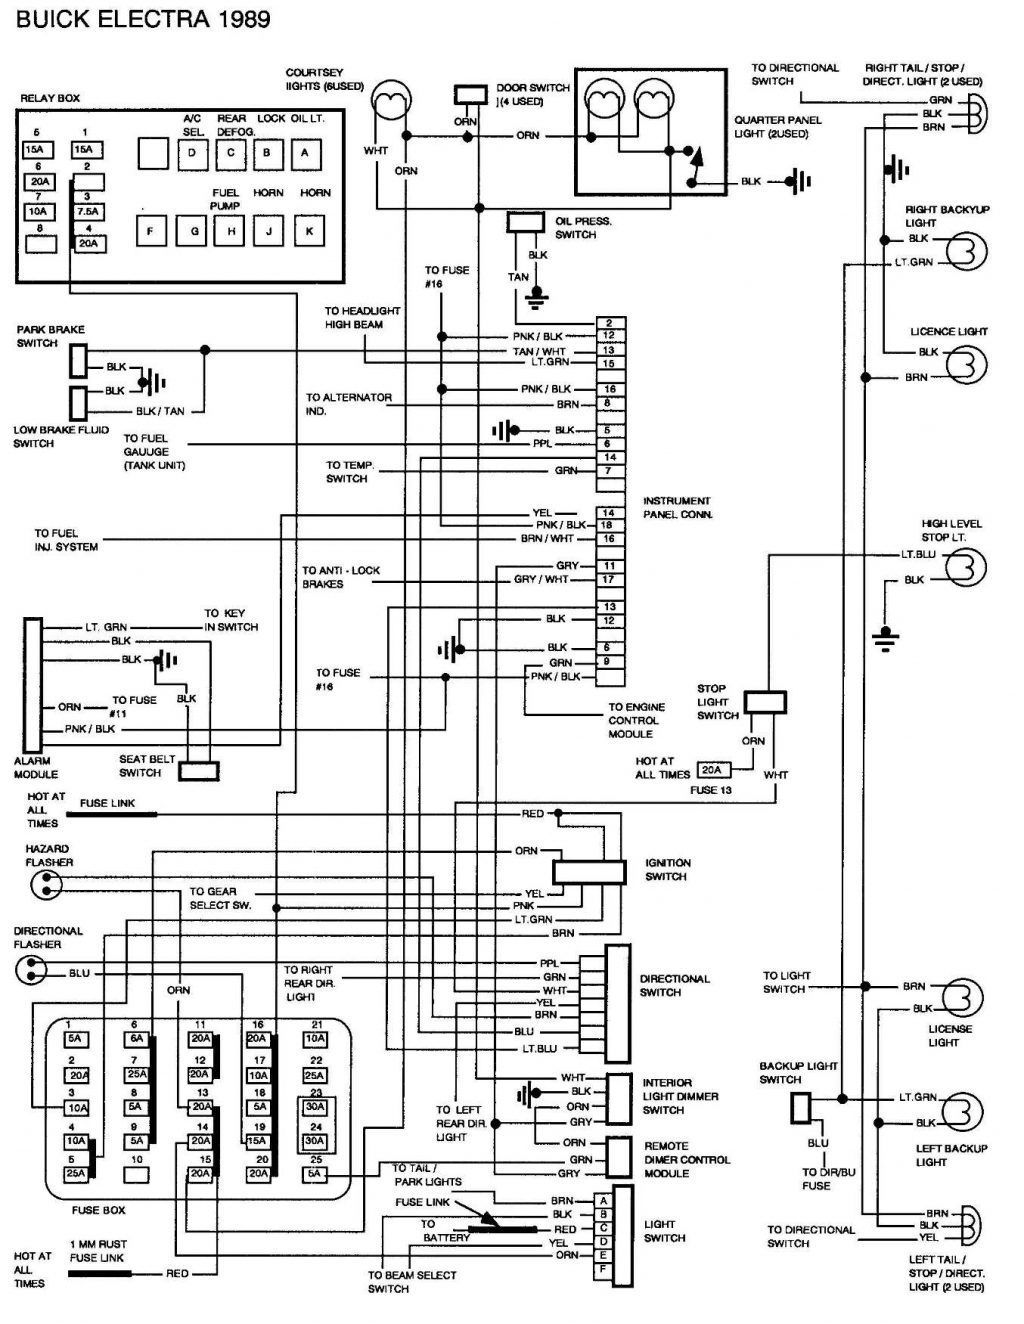 1998 Nissan Altima Wiring Schematic In 2020 Electrical Wiring Diagram Buick Lesabre Electrical Diagram